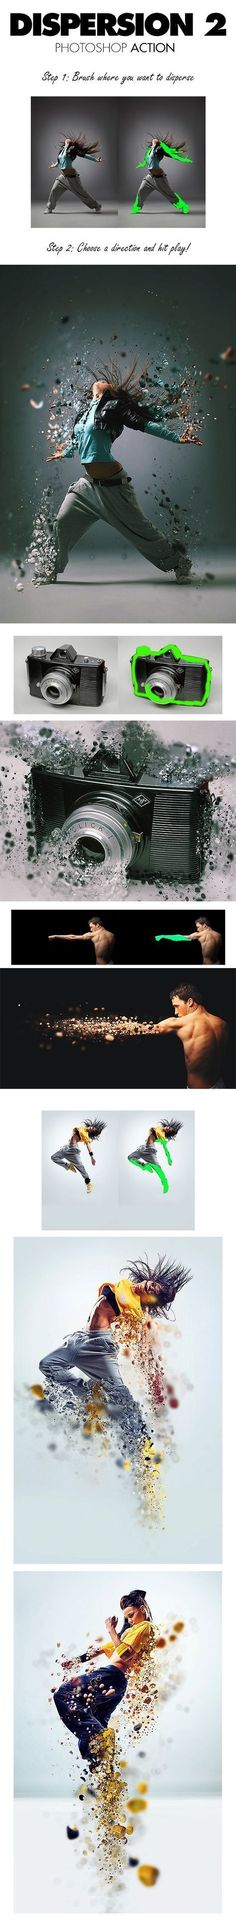 Buy Dispersion 2 Photoshop Action by sevenstyles on GraphicRiver. Please watch the above video for a demonstration of the action and customization tutorial Other actions you may like. Photoshop Effects, Photoshop Design, Photoshop Tutorial, Photoshop Actions, Photoshop Lessons, Photoshop Filters, Picsart Tutorial, Adobe Photoshop, Lightroom